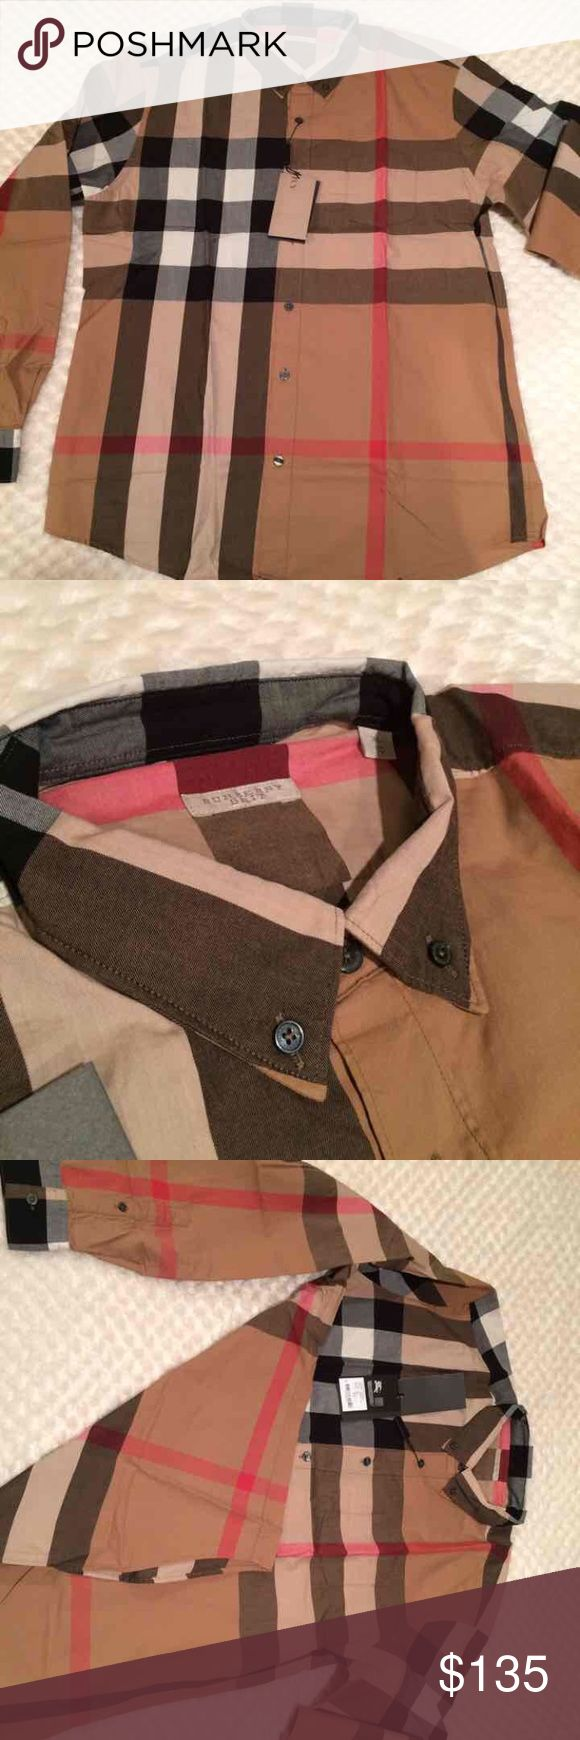 New burberry shirt for men M New with tags burberry shirt for men size medium  100% cotton beige color Burberry Shirts Casual Button Down Shirts